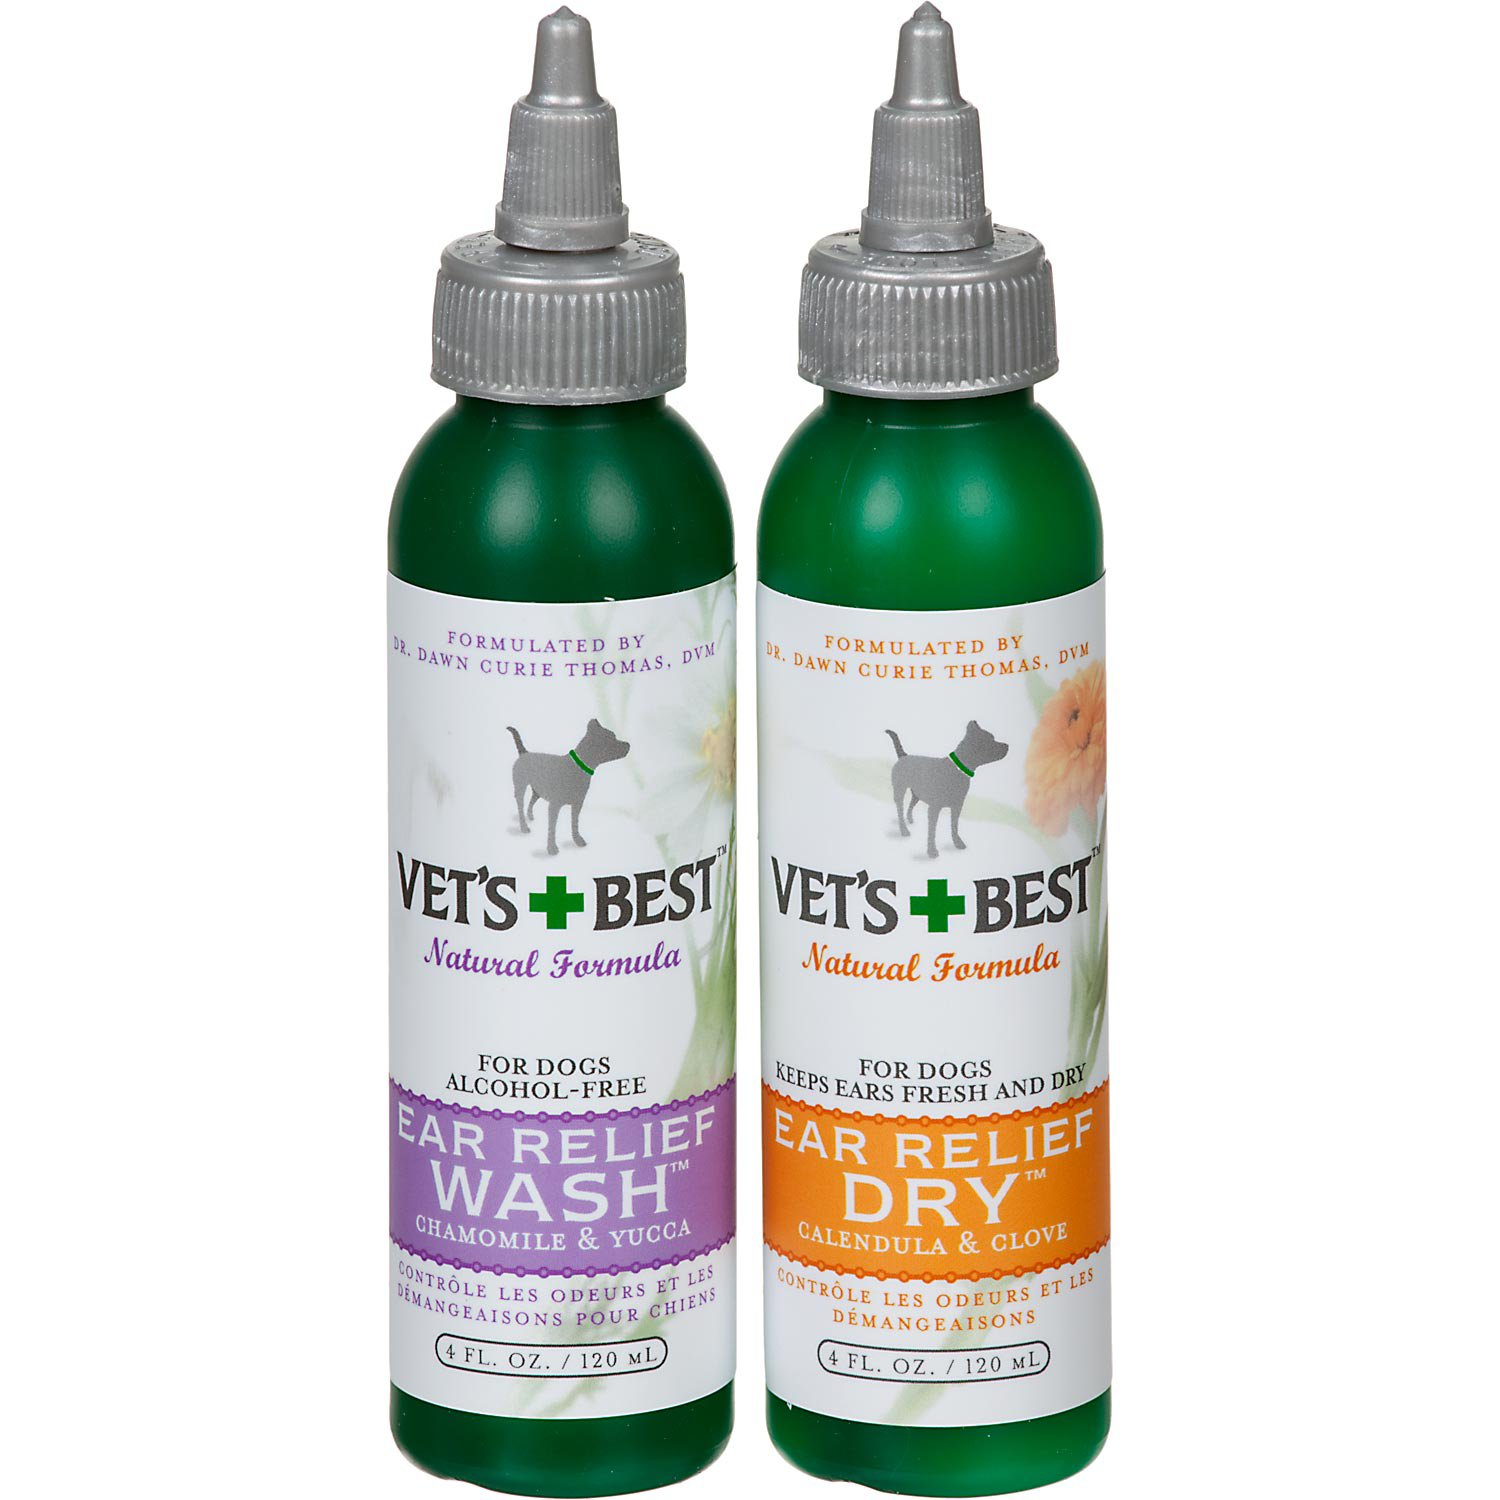 One of the best solutions to make for your dog's ears to prevent infection is witch hazel and organic apple cider vinegar. Mix in a 1 to 1 ratio (50/50 mixture) place in a bottle and shake well. Fill an ear syringe and clean your dog's ears.